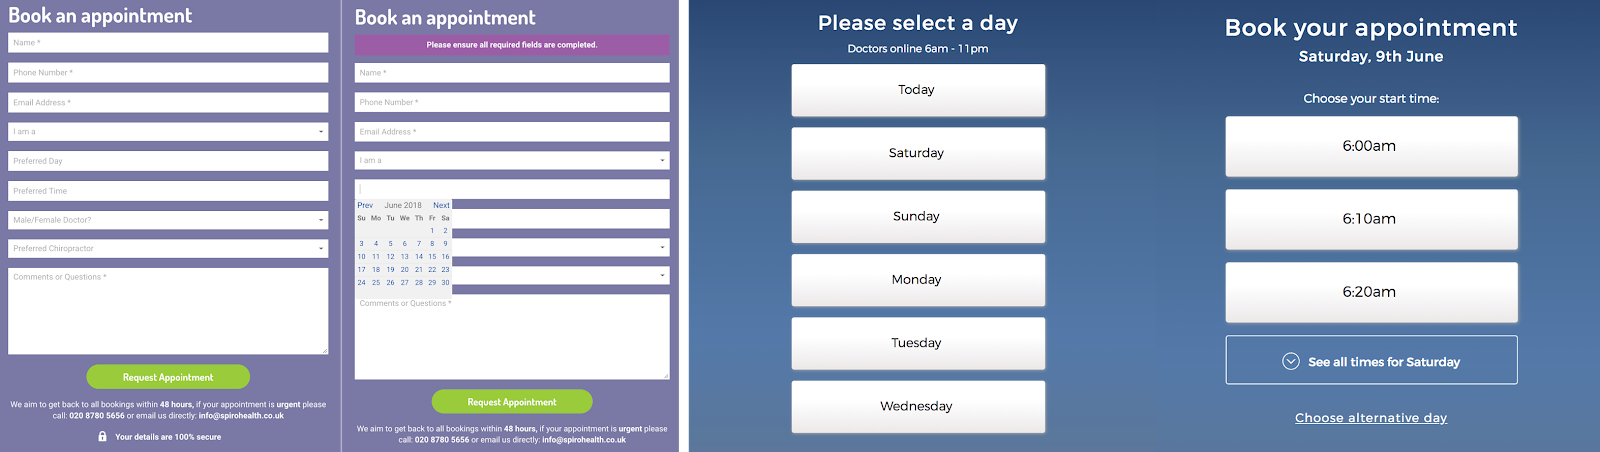 Two screenshots: the first is a traditional date picker, the second is a simplified interface for finding an appointment